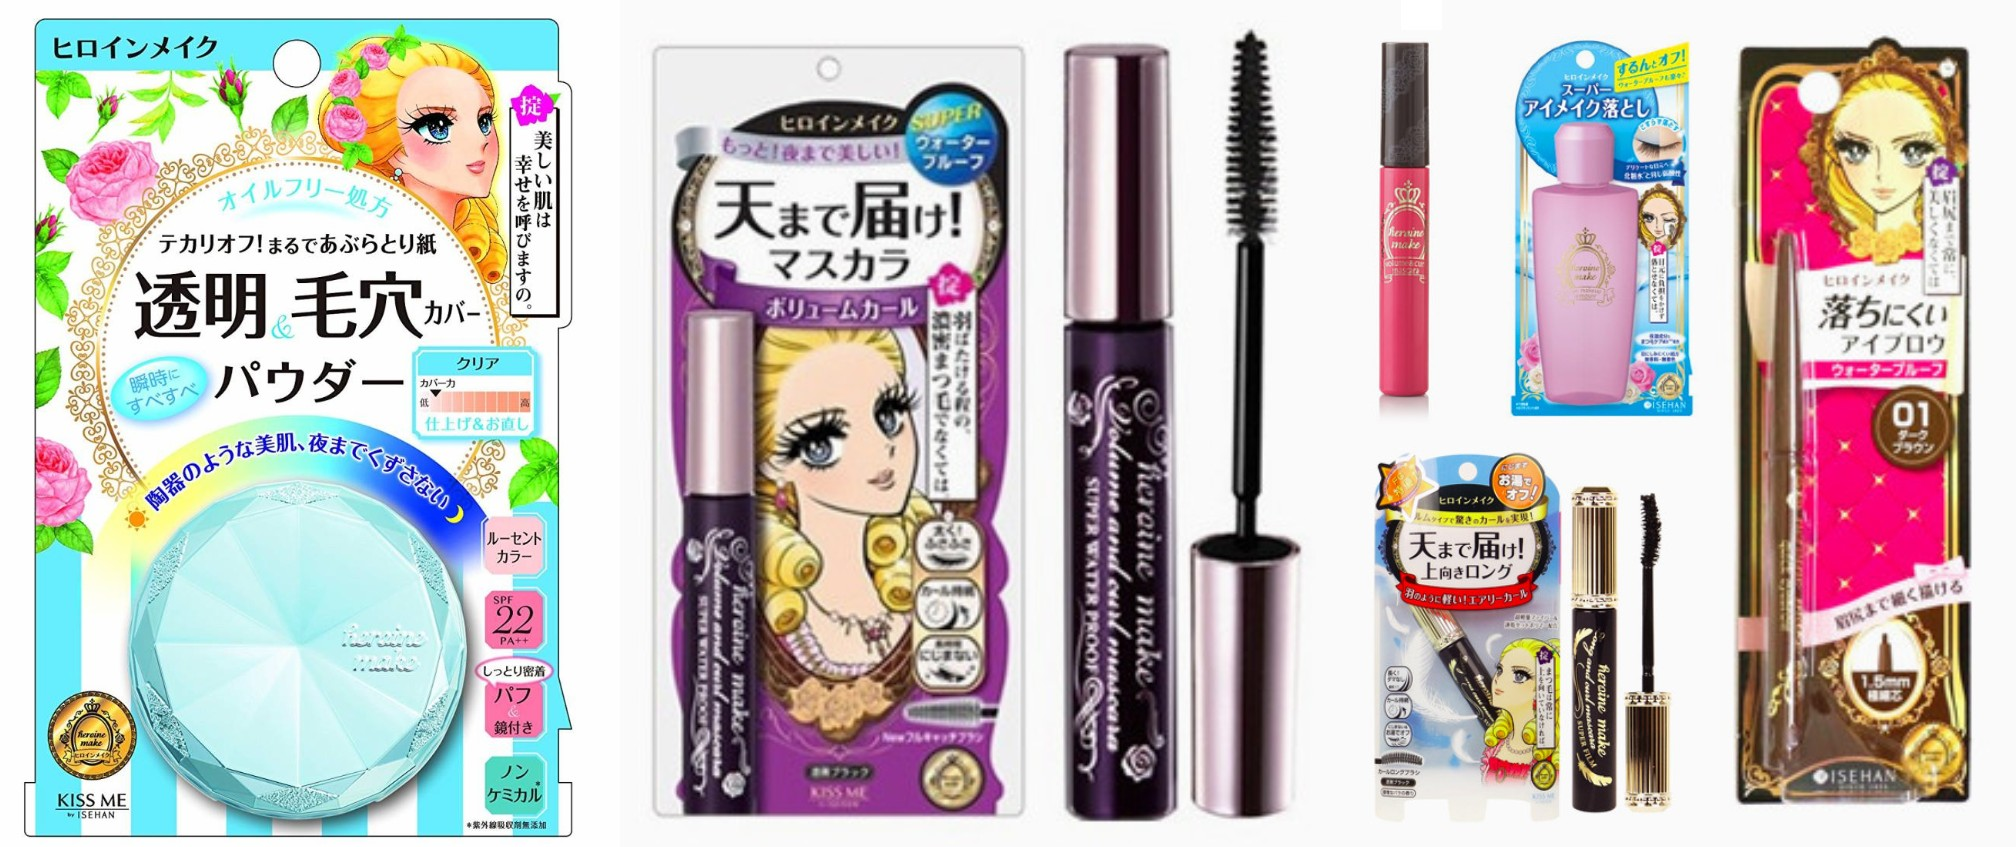 KissMe Heroine Makeup